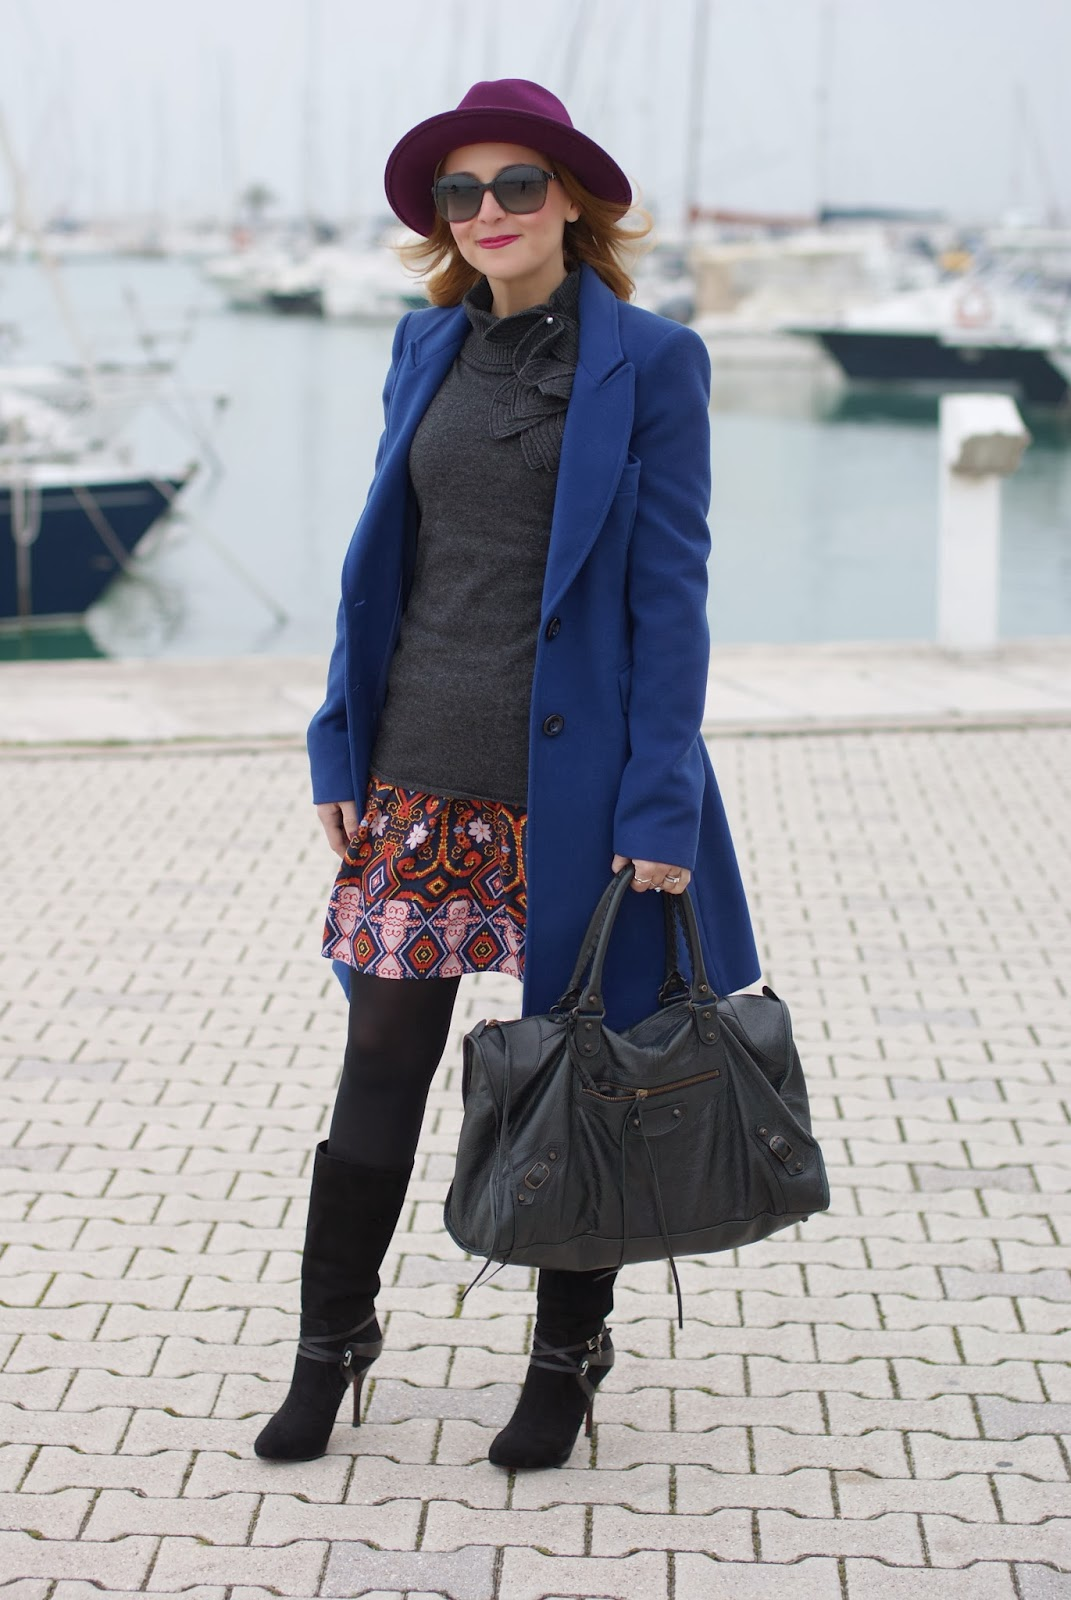 Paola Frani cappotto, cobalt blue coat, Balenciaga work bag, Cesare Paciotti boots, Fashion and Cookies, fashion blogger